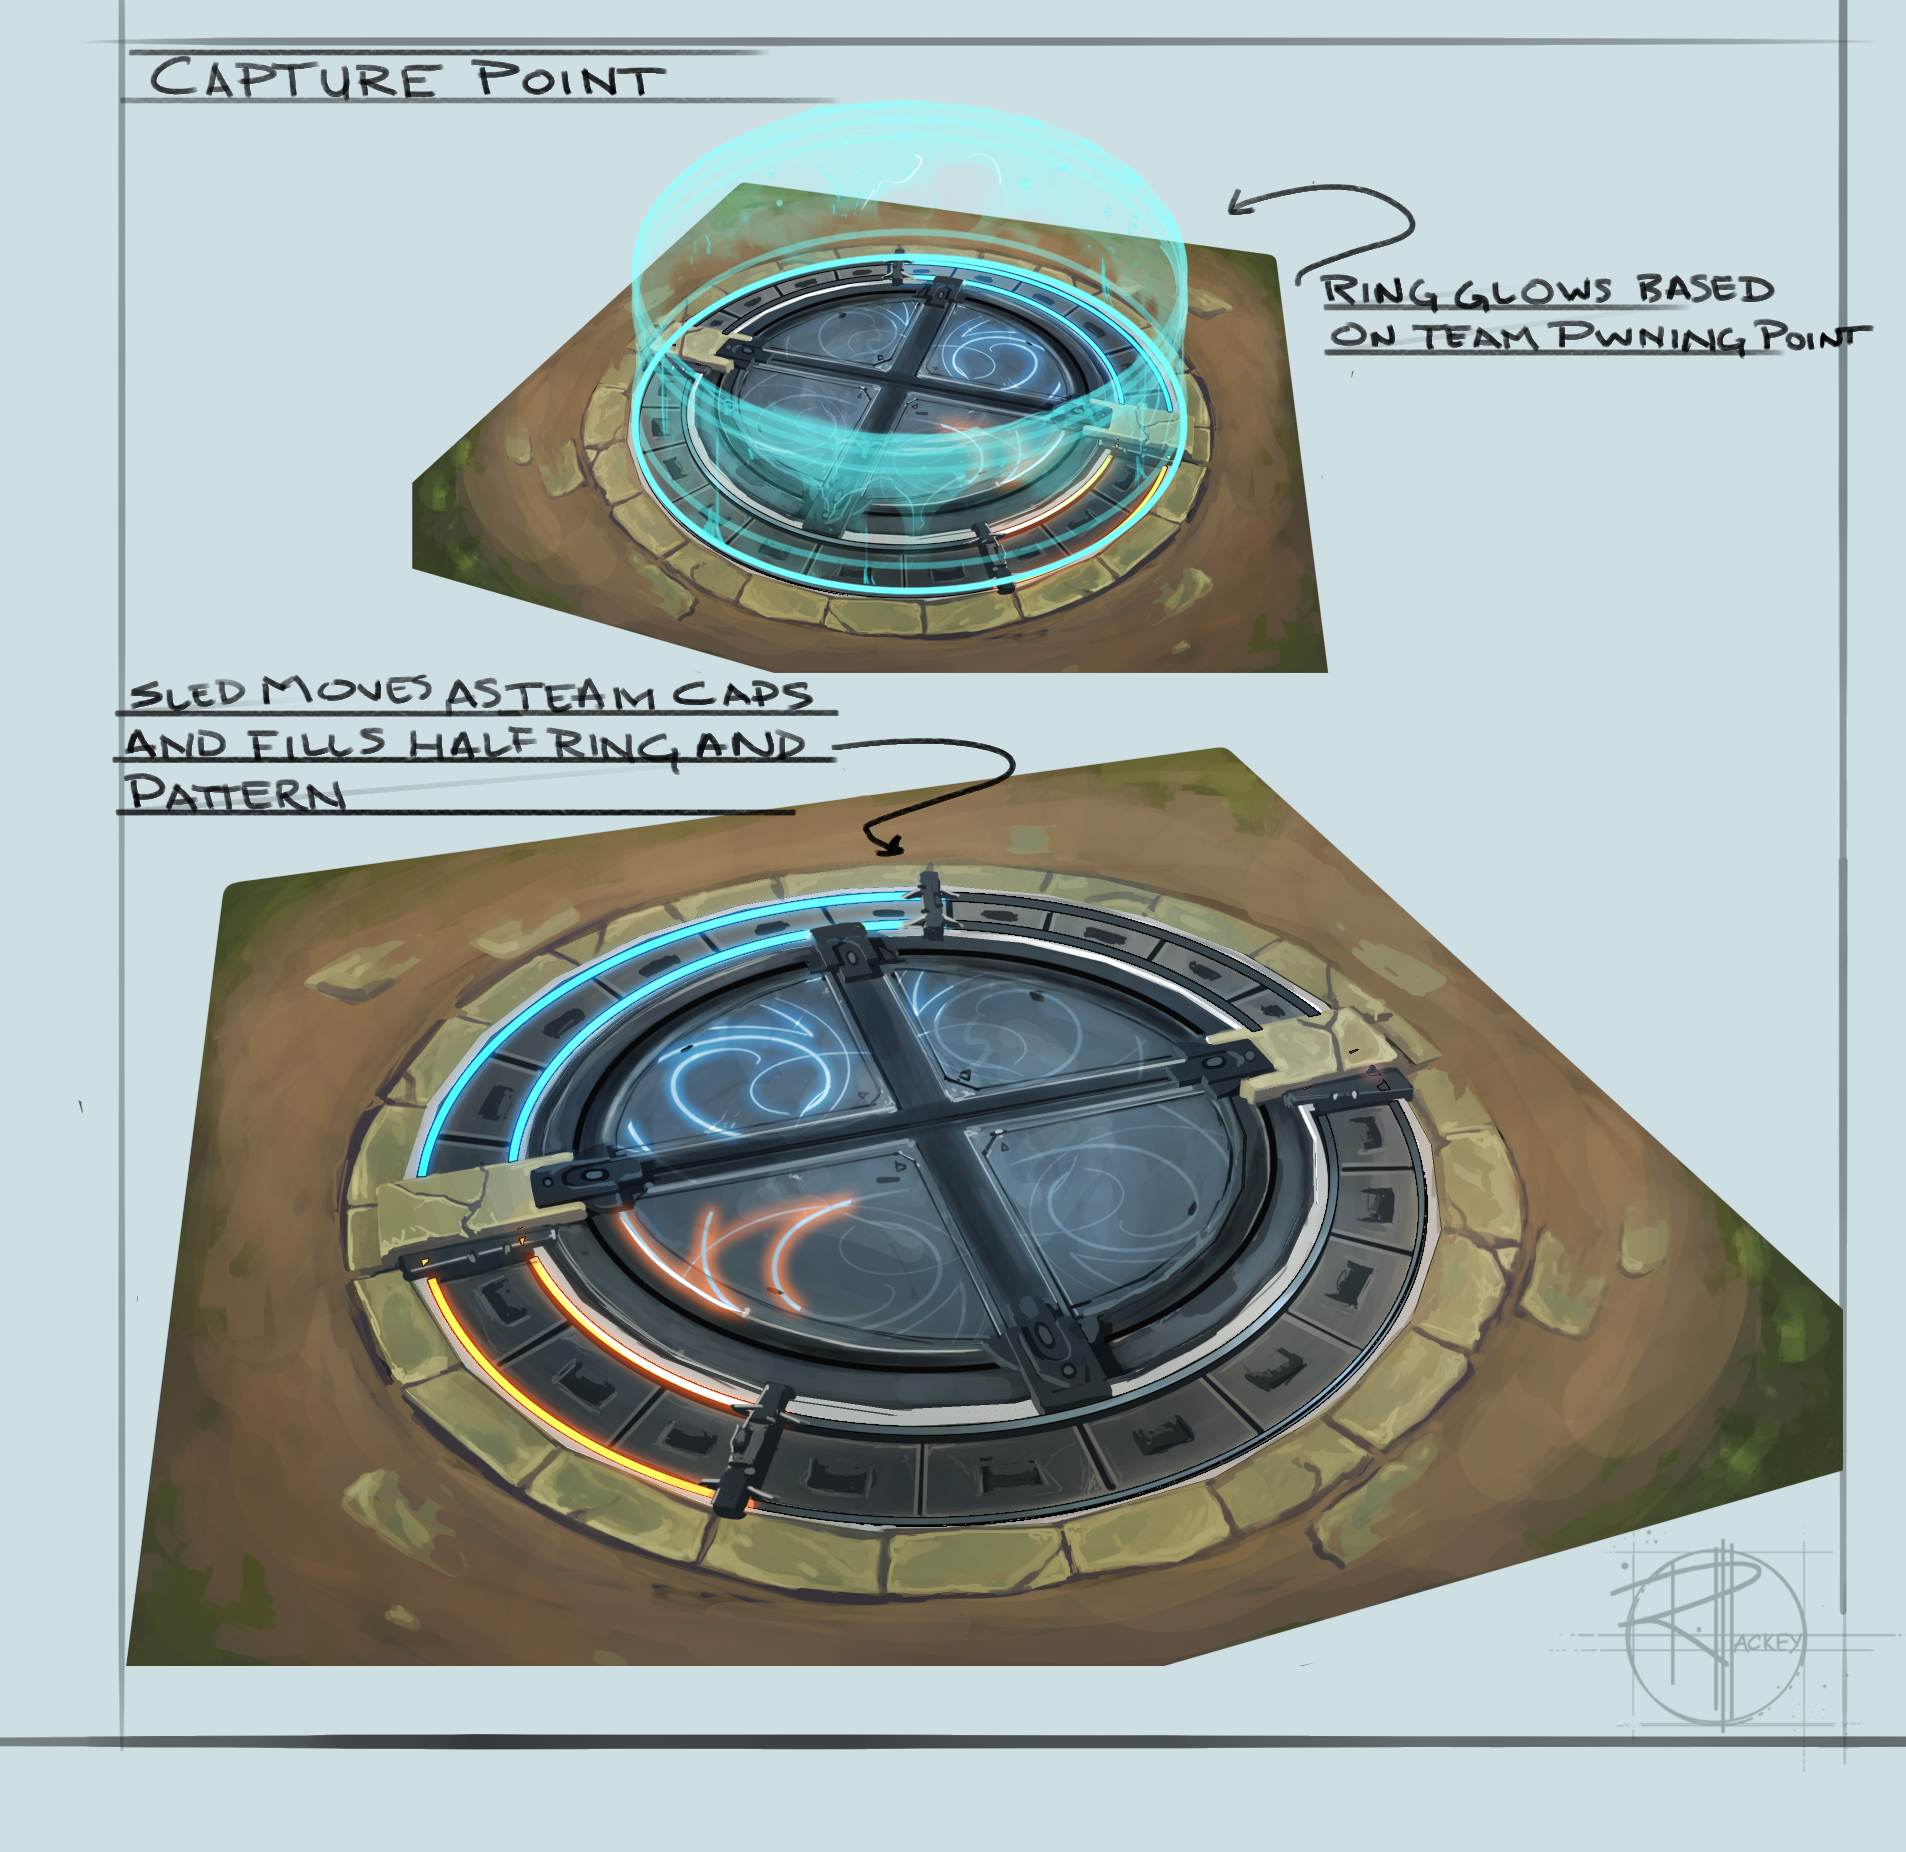 Concept_CapturePlate_01.png